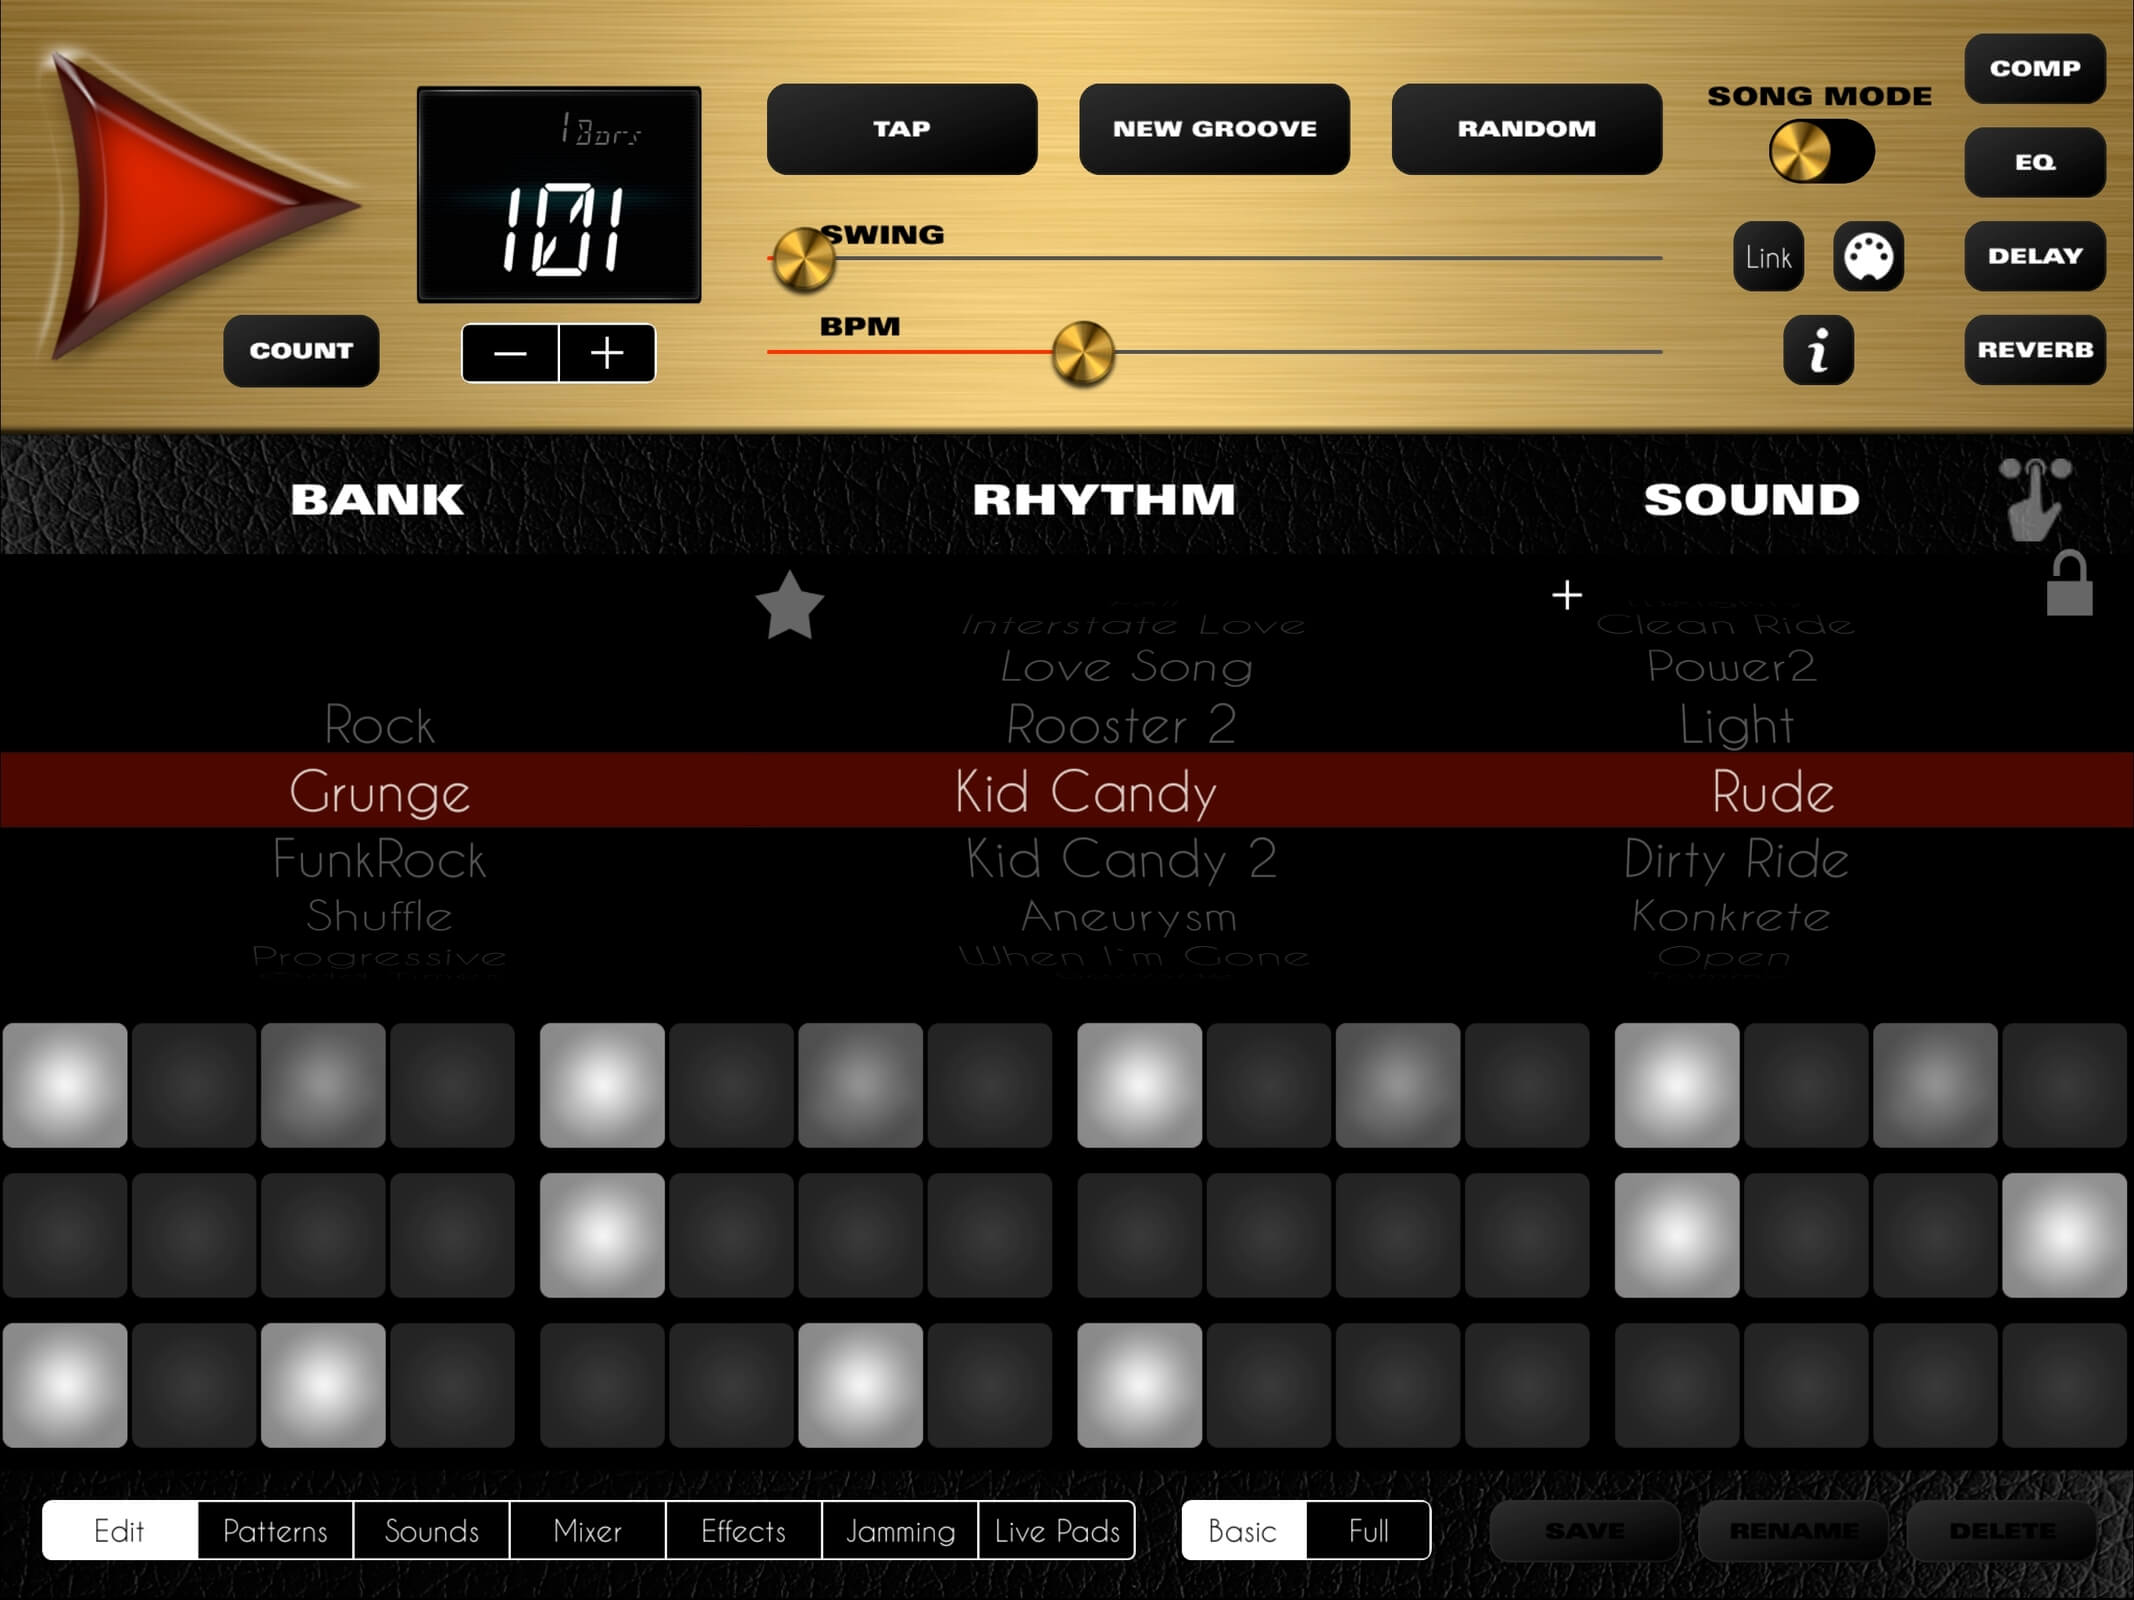 lumbeat rock drum machine 4 session drummer for ios released